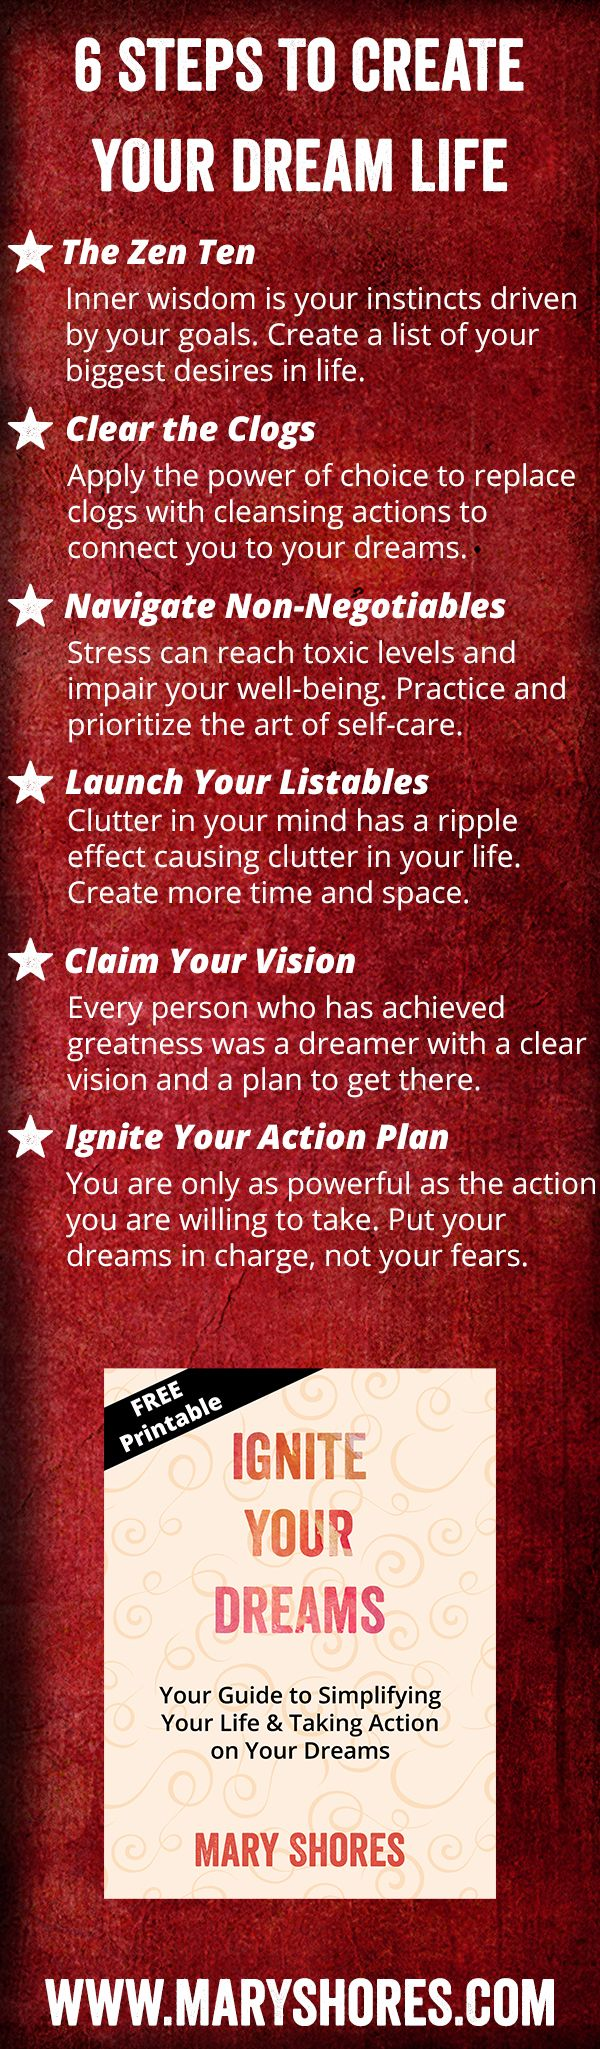 [FREE PRINTABLE] Create Your Dream Life - Ignite Your Dreams Workbook - Hay House Author Mary Shores - Sign Up to Download